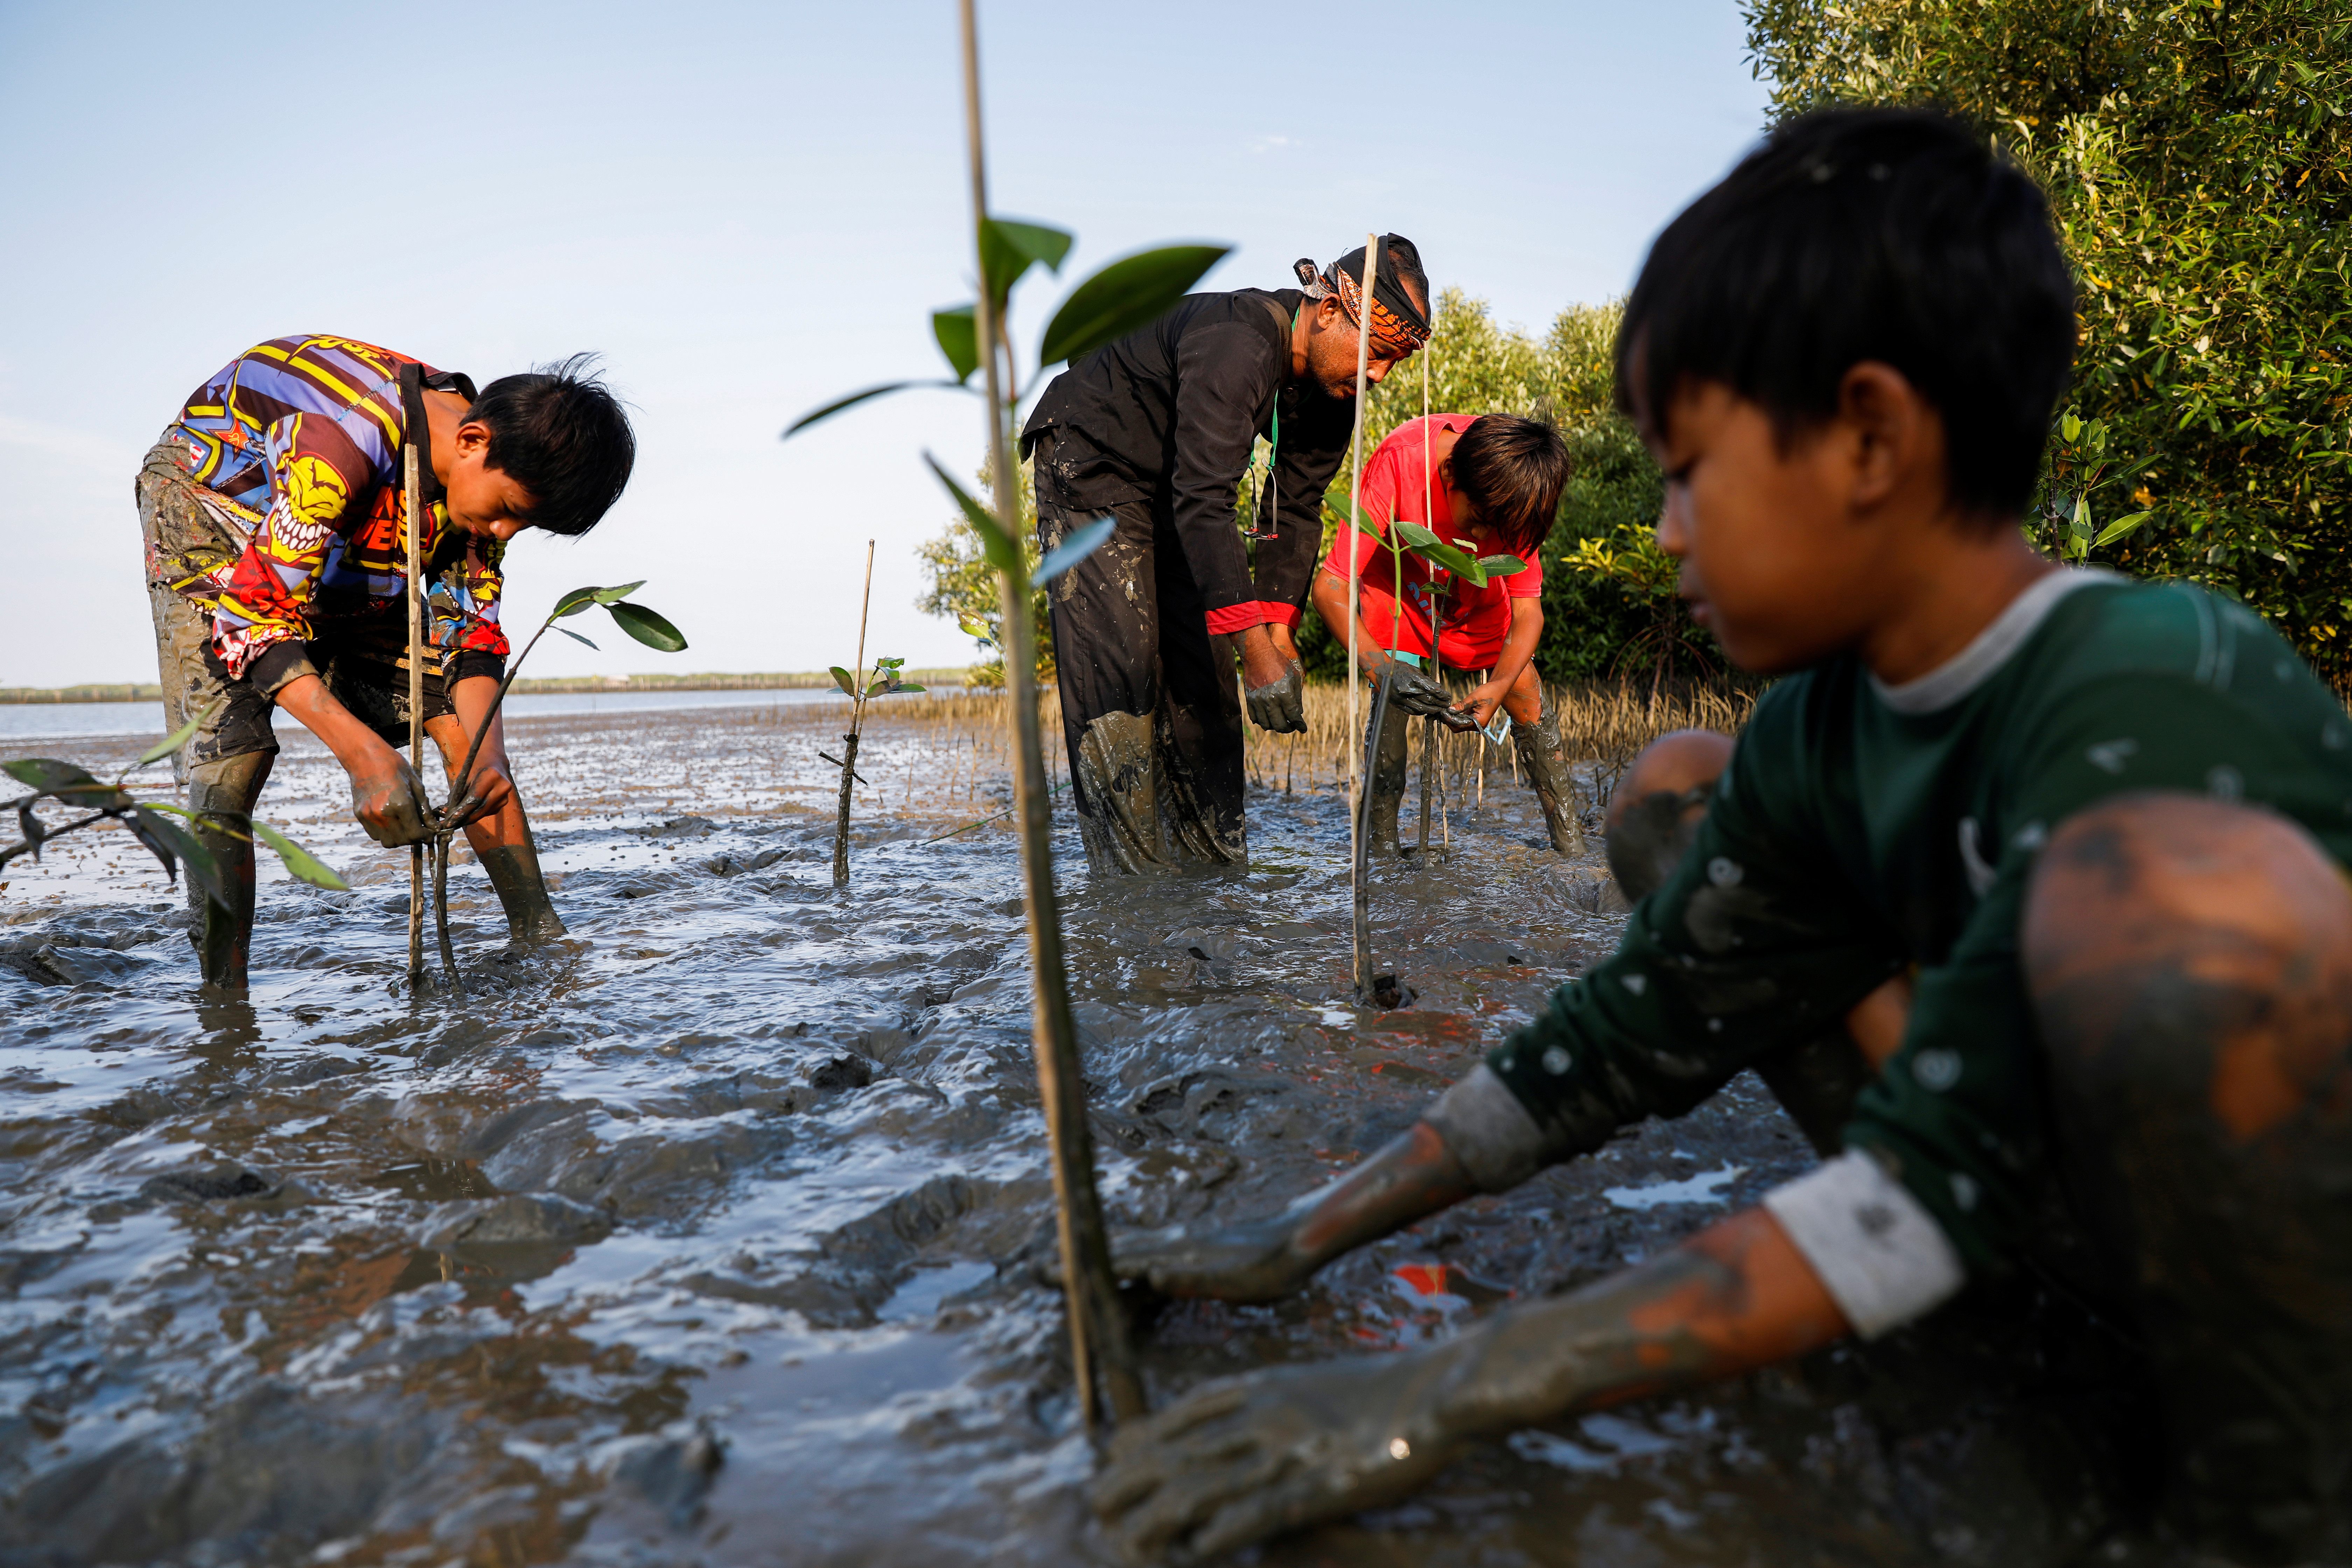 Samsudin, 50, plants mangrove trees with local children at Tiris beach in Pabeanilir village, Indramayu regency, West Java province, Indonesia.